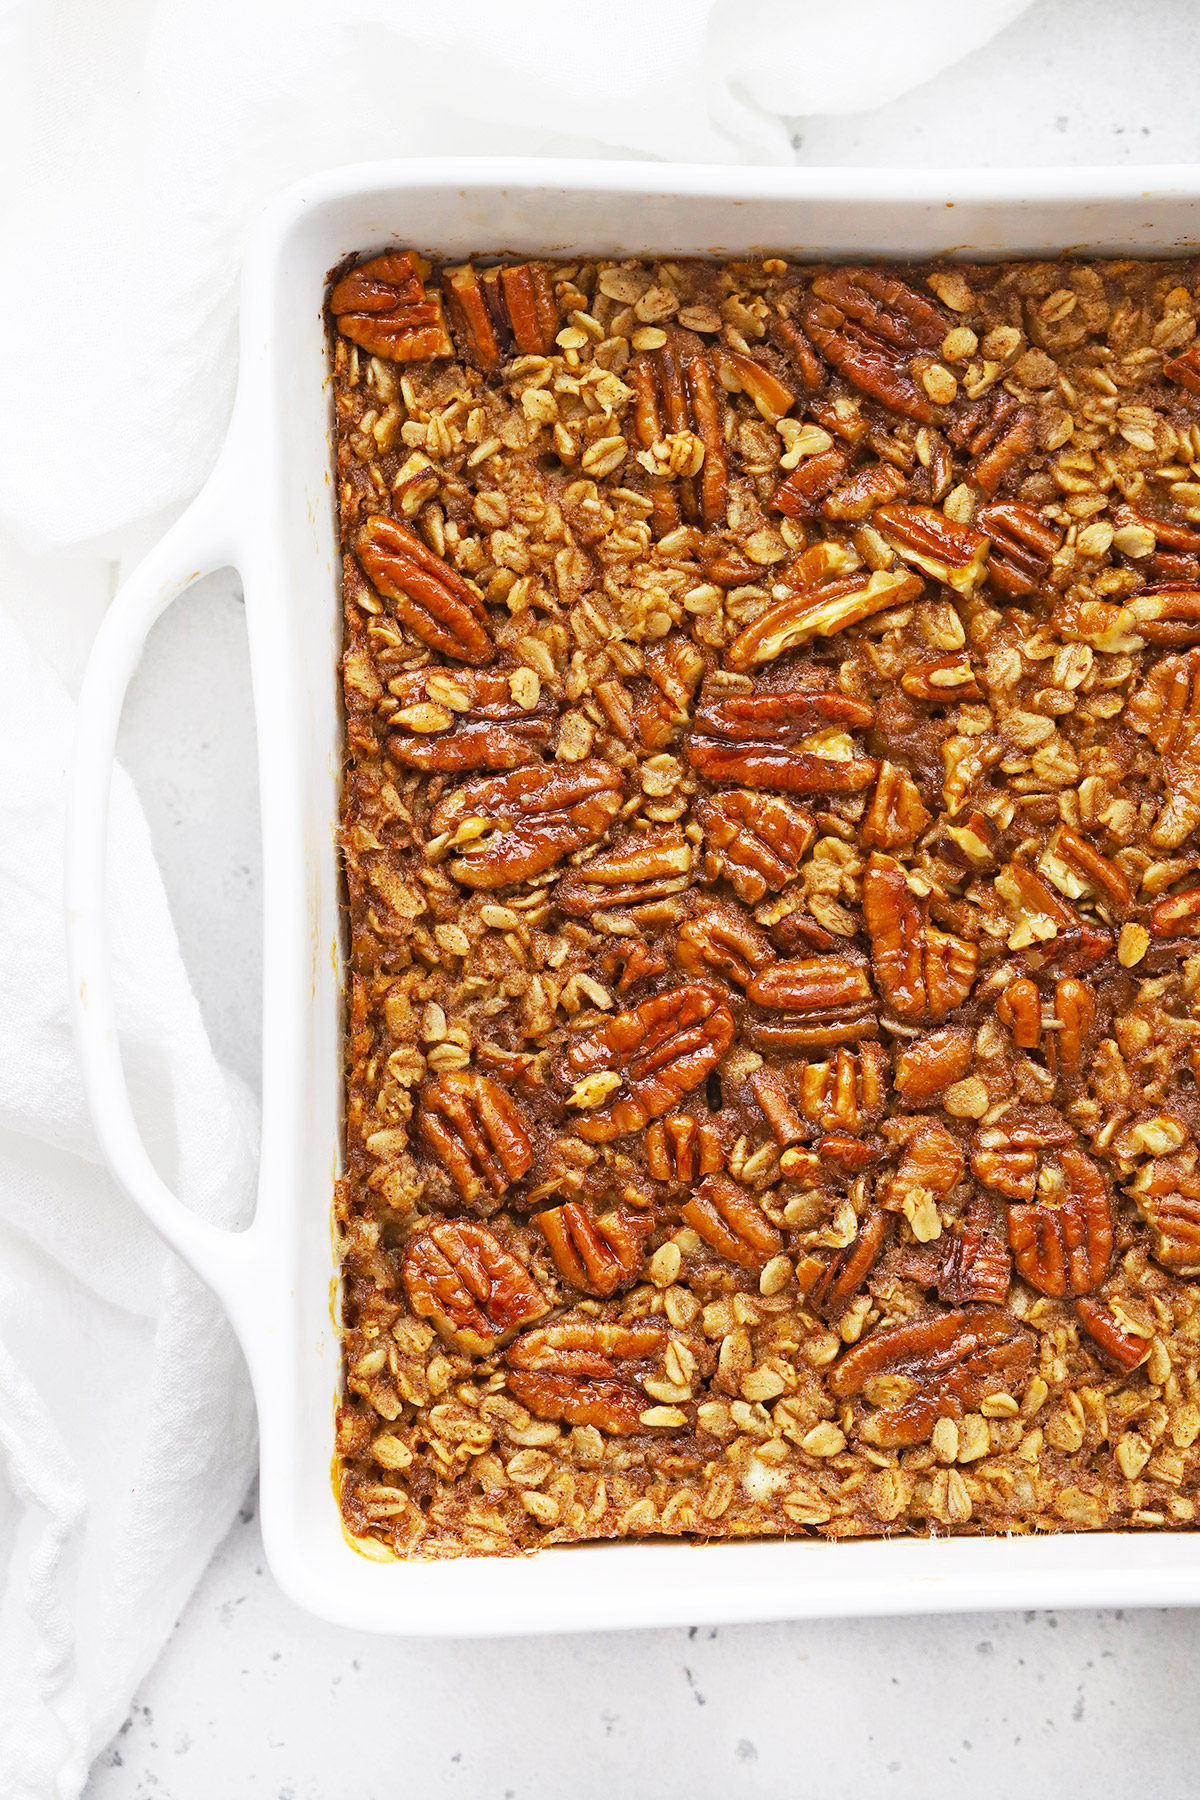 Close up view of a pan of pecan pie baked oatmeal.